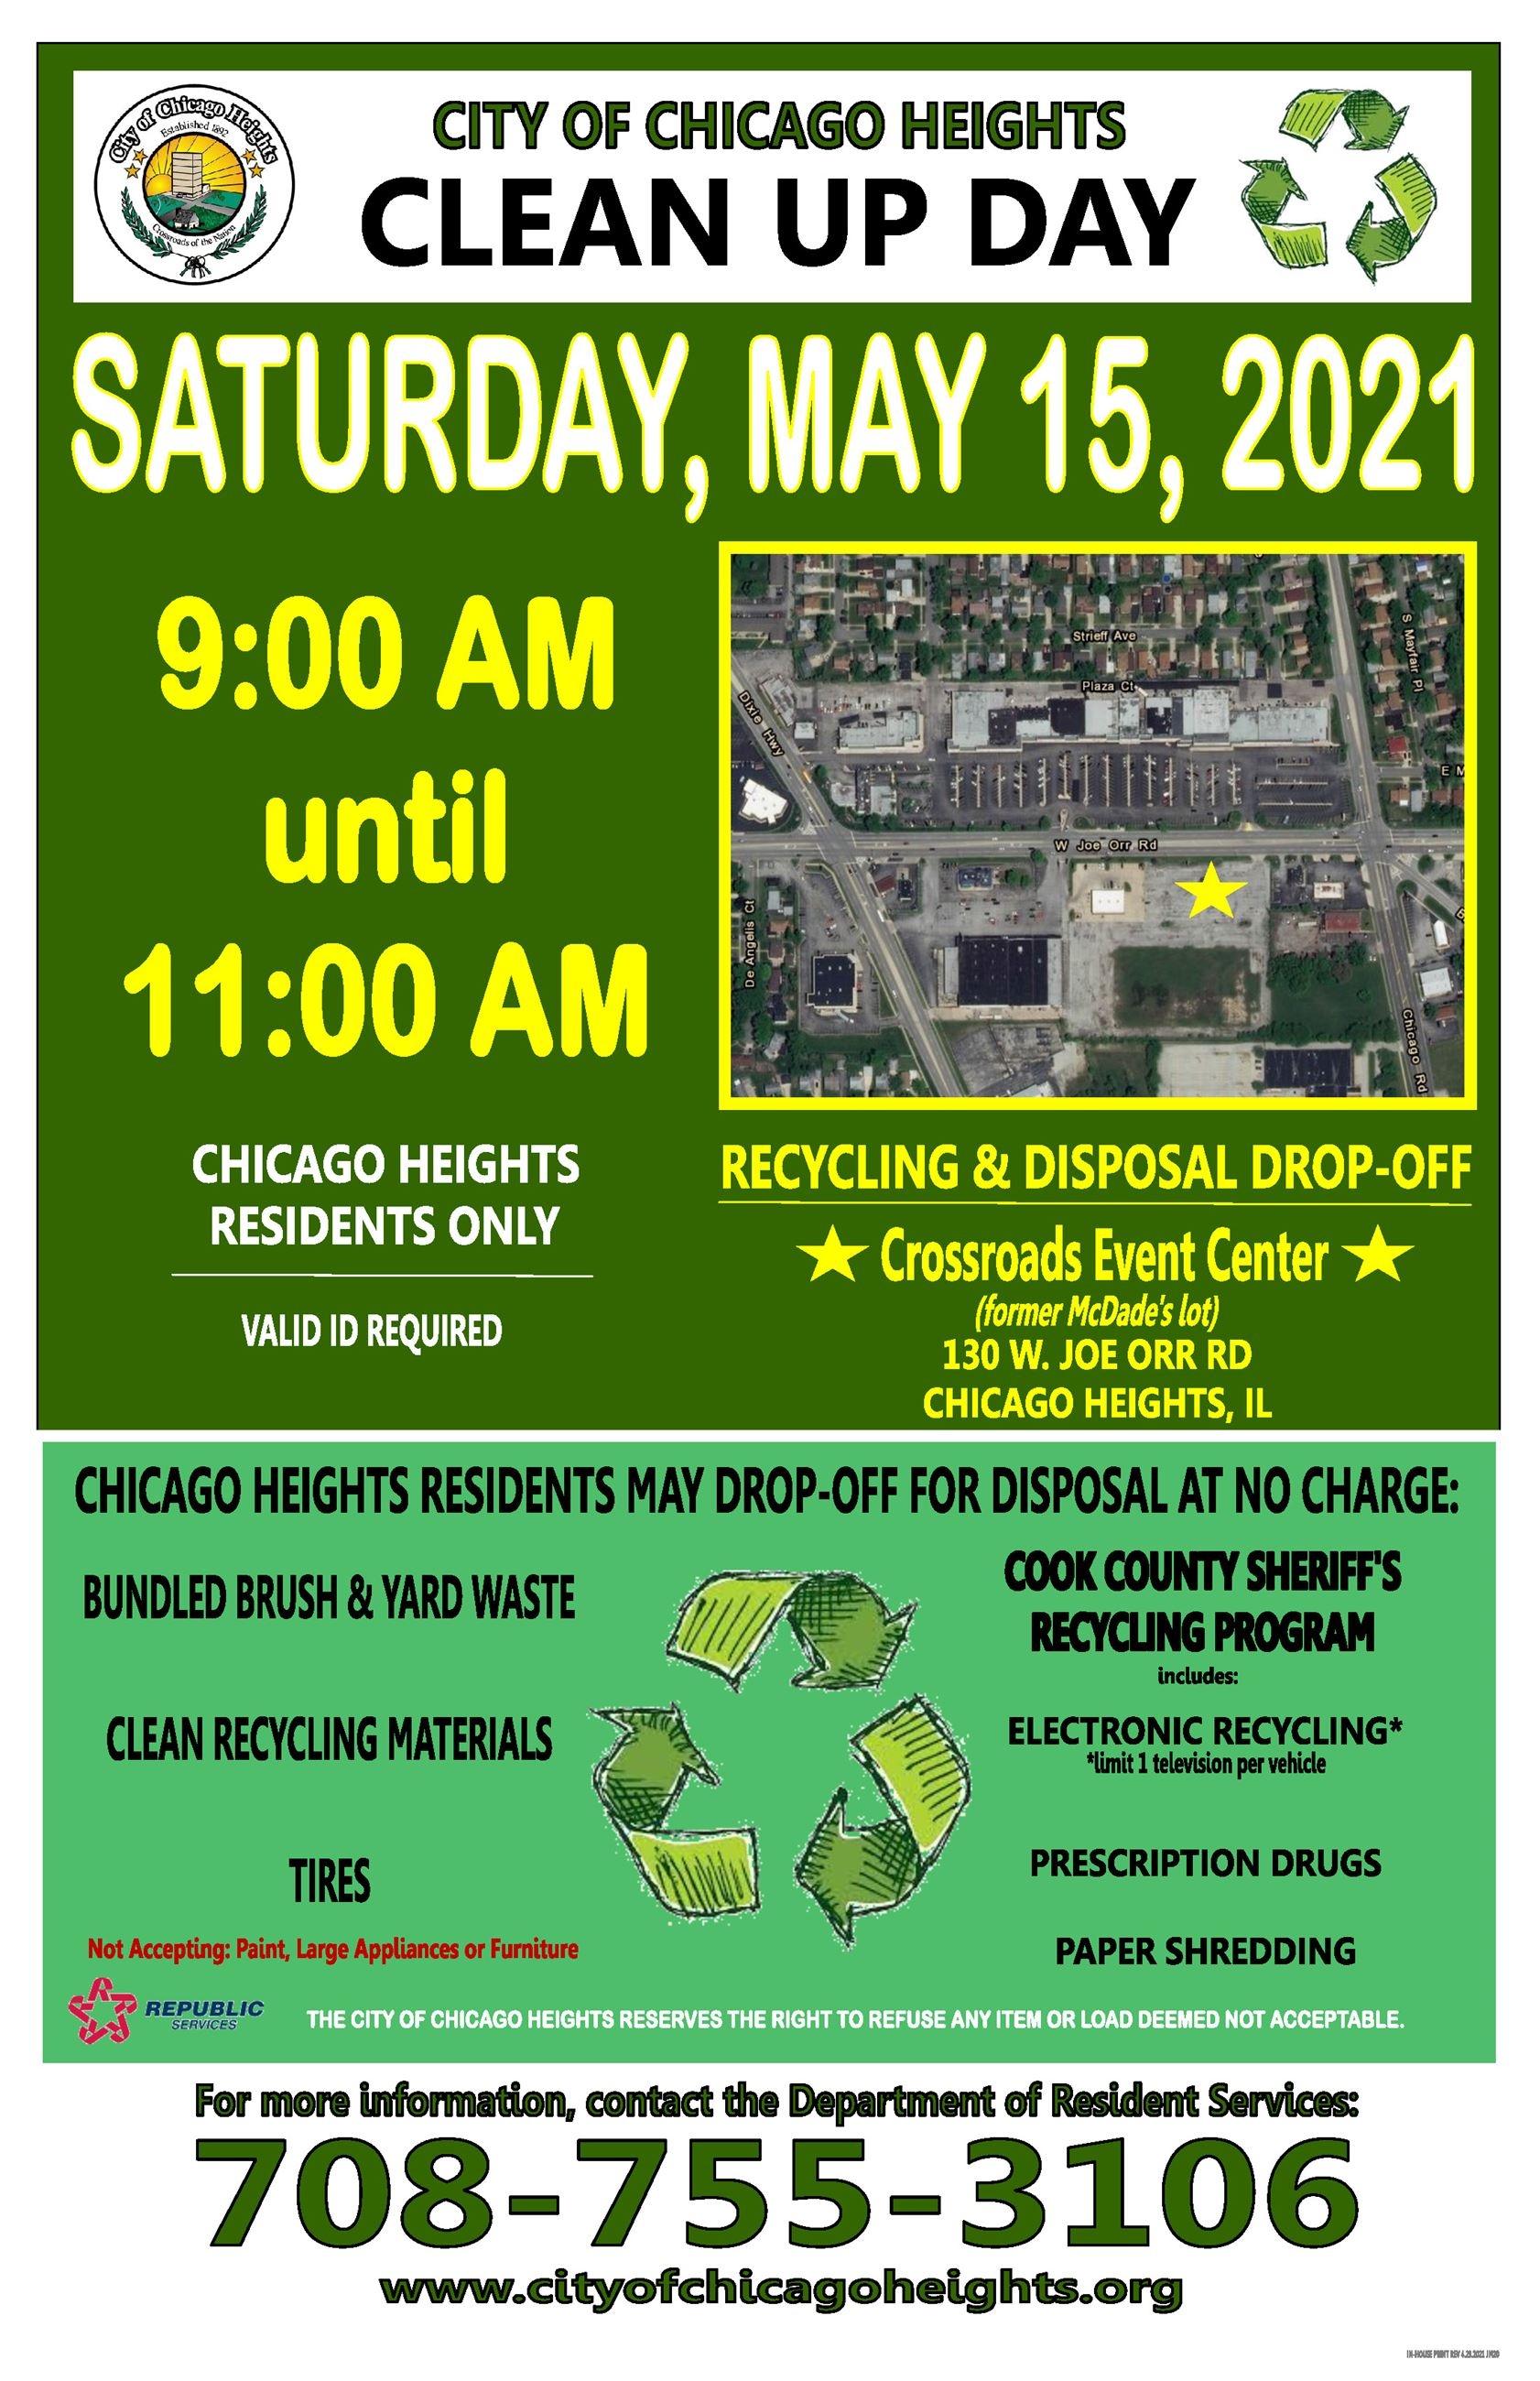 Chicago Heights Citywide Clean-Up Day, Saturday, May 15, 2021